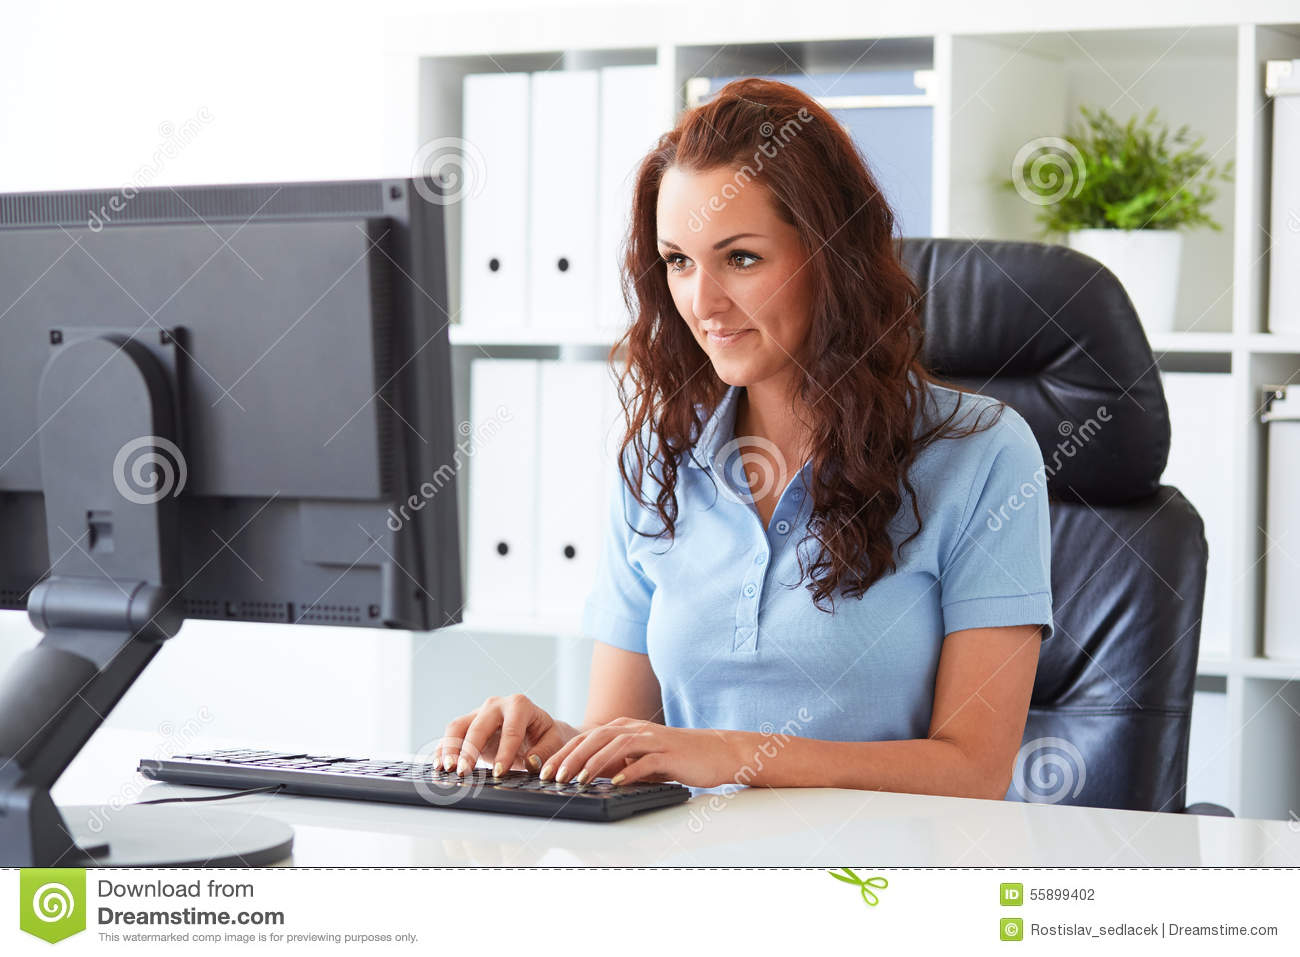 Business woman writing on a computer